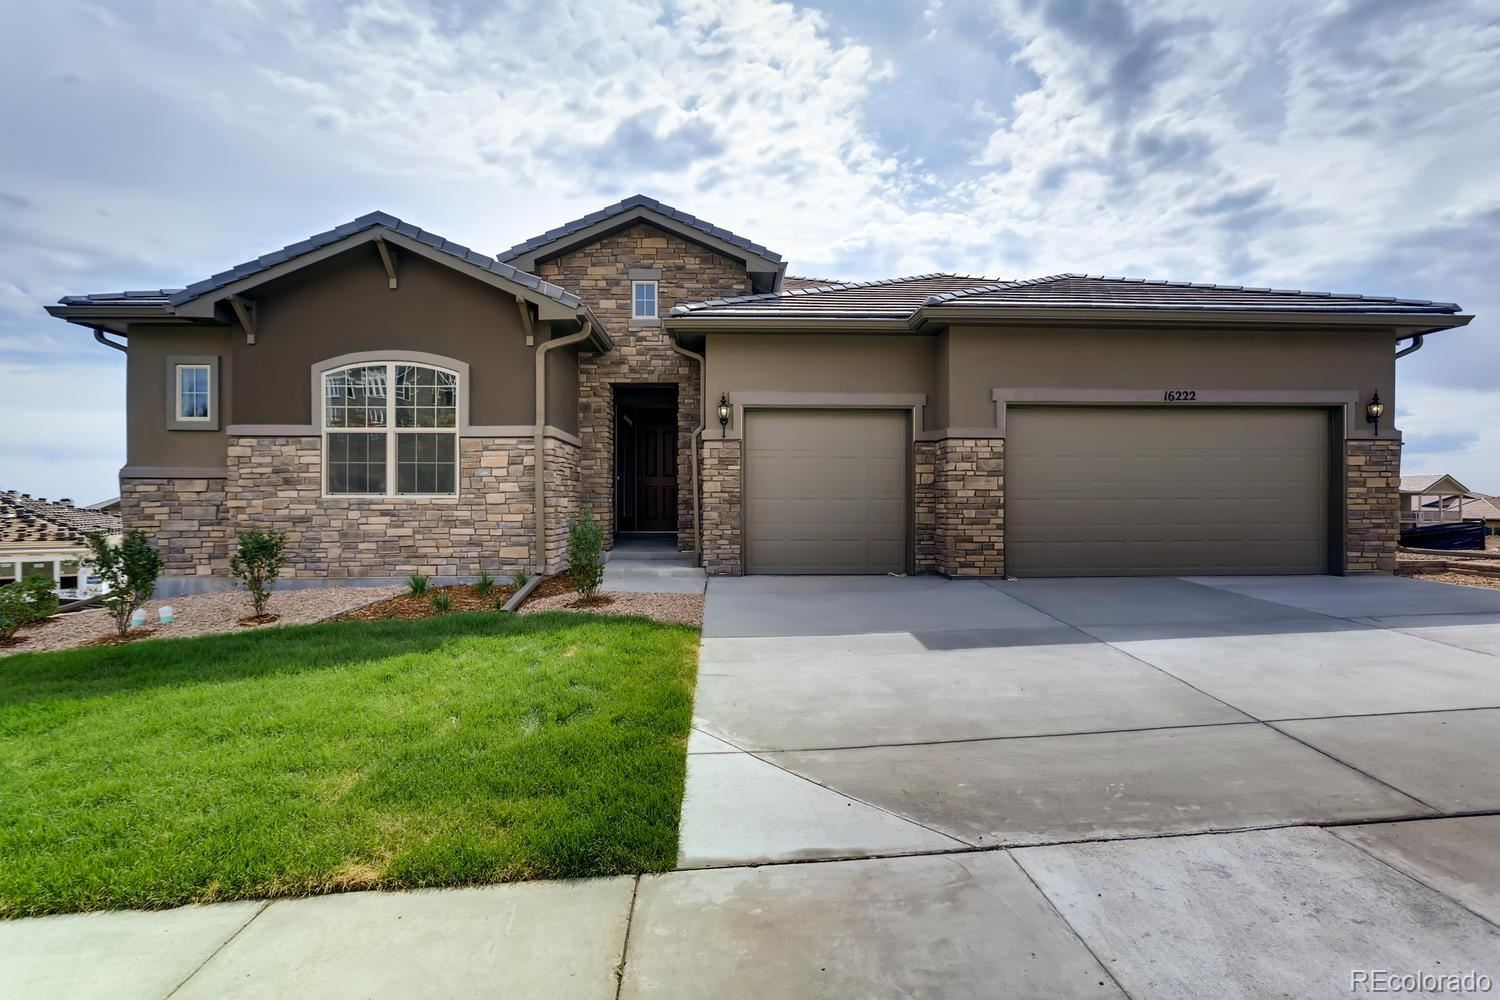 16222 W 95th Lane, Arvada, CO 80007 - #: 8909788